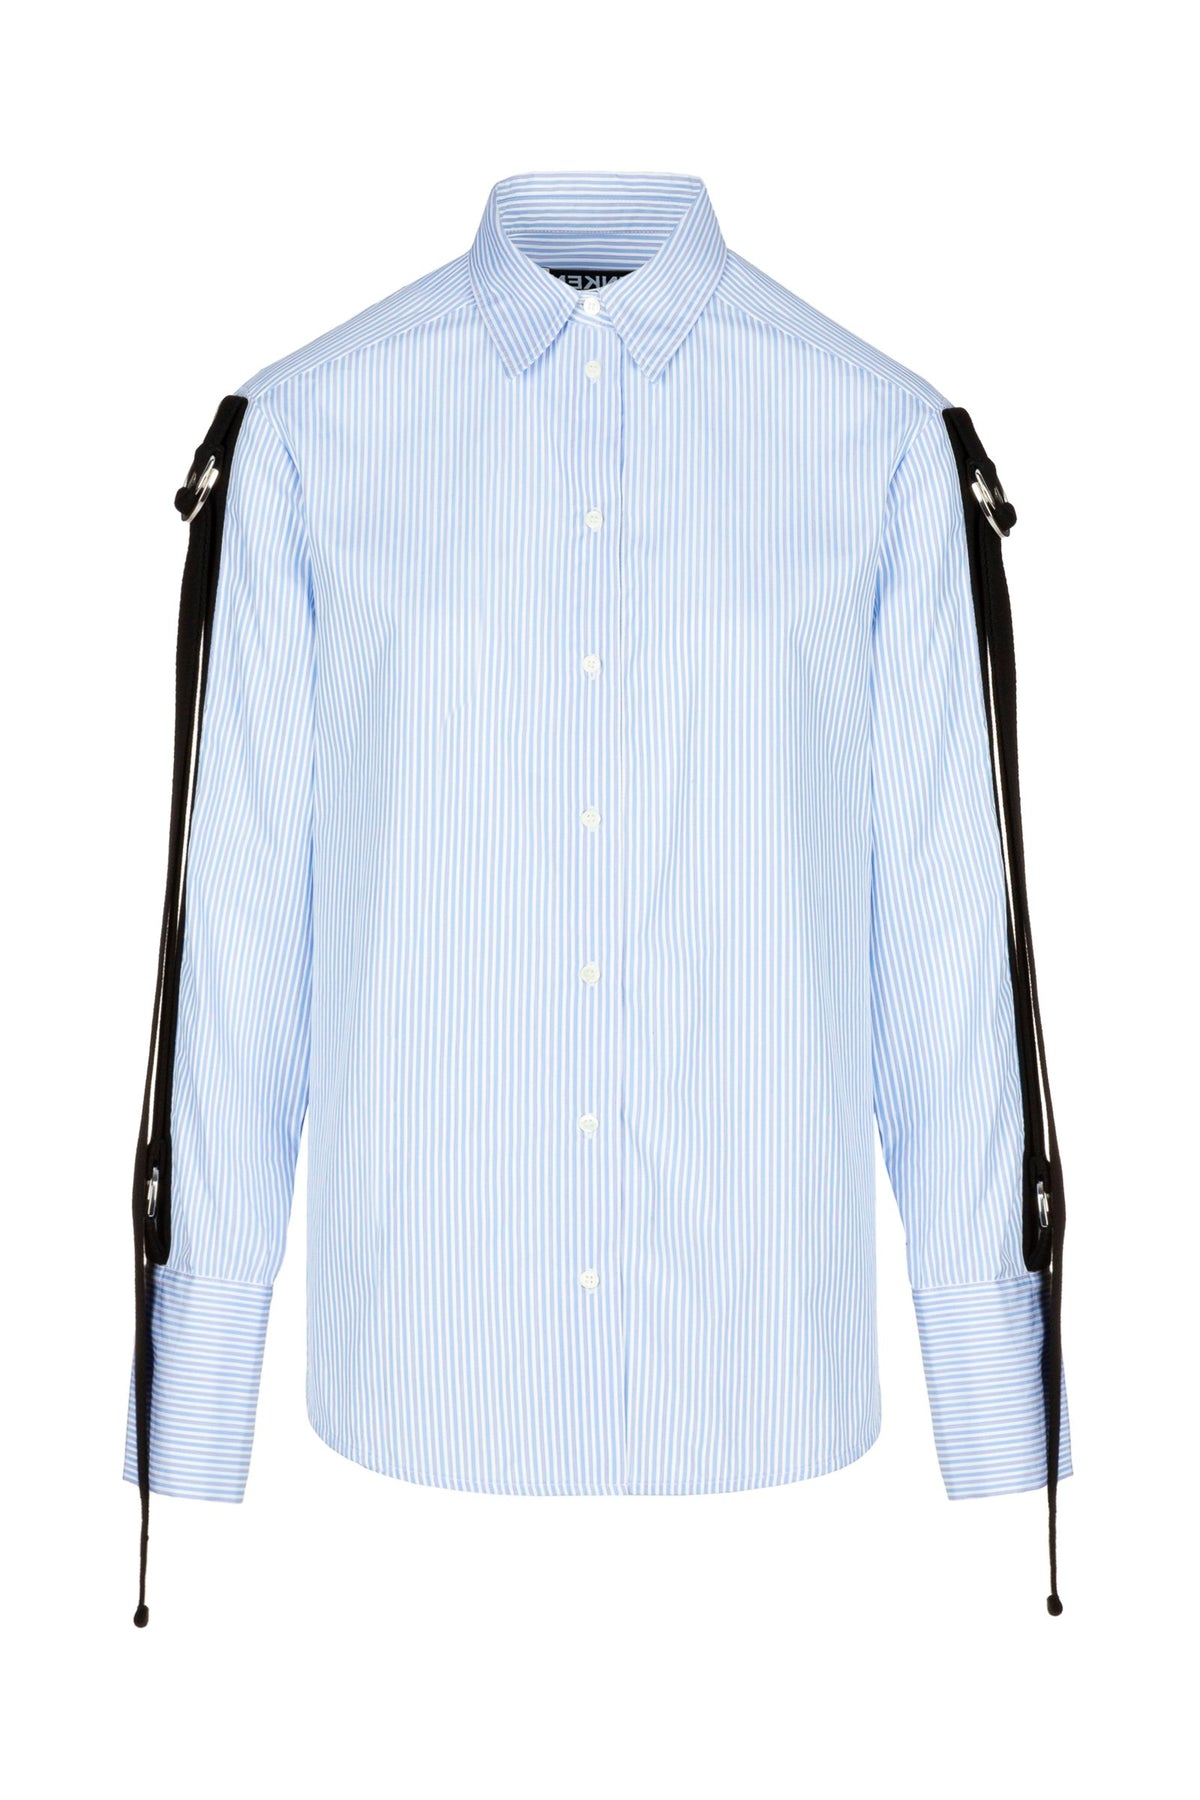 Grade2 | Shirt | Blue Grandpa Stripe